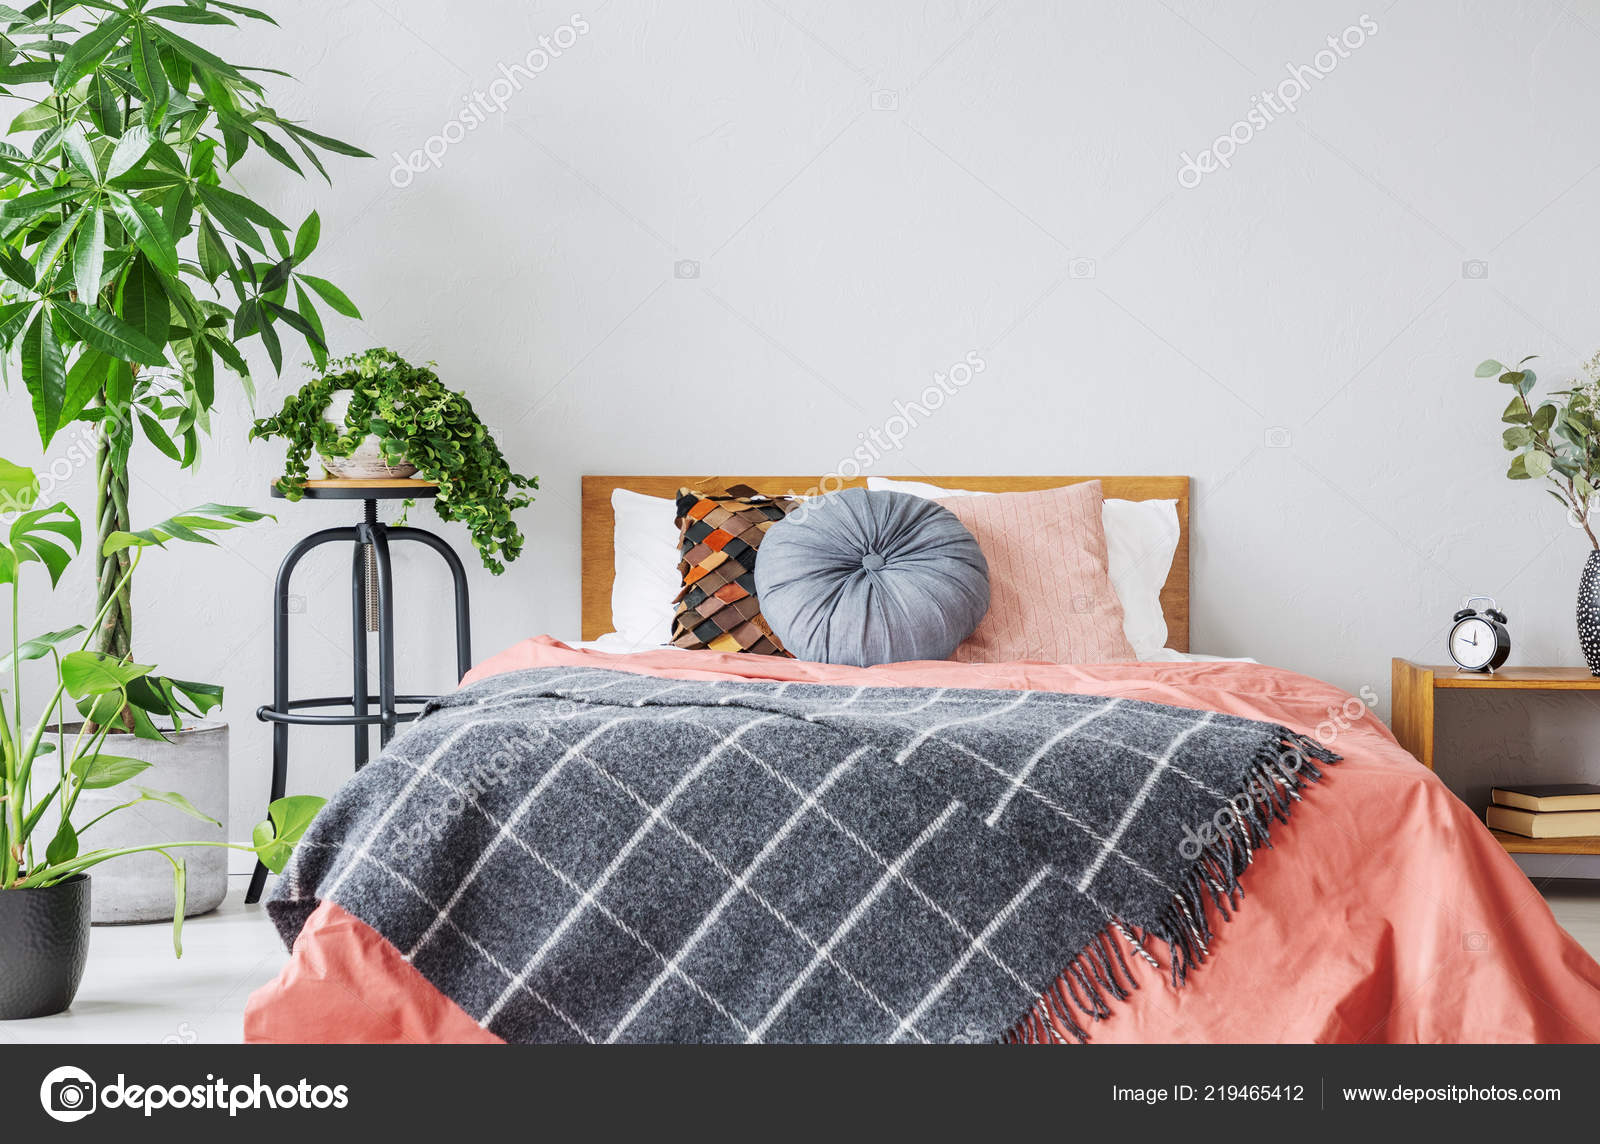 Patterned blanket red bed cushions grey bedroom interior plants real stock photo